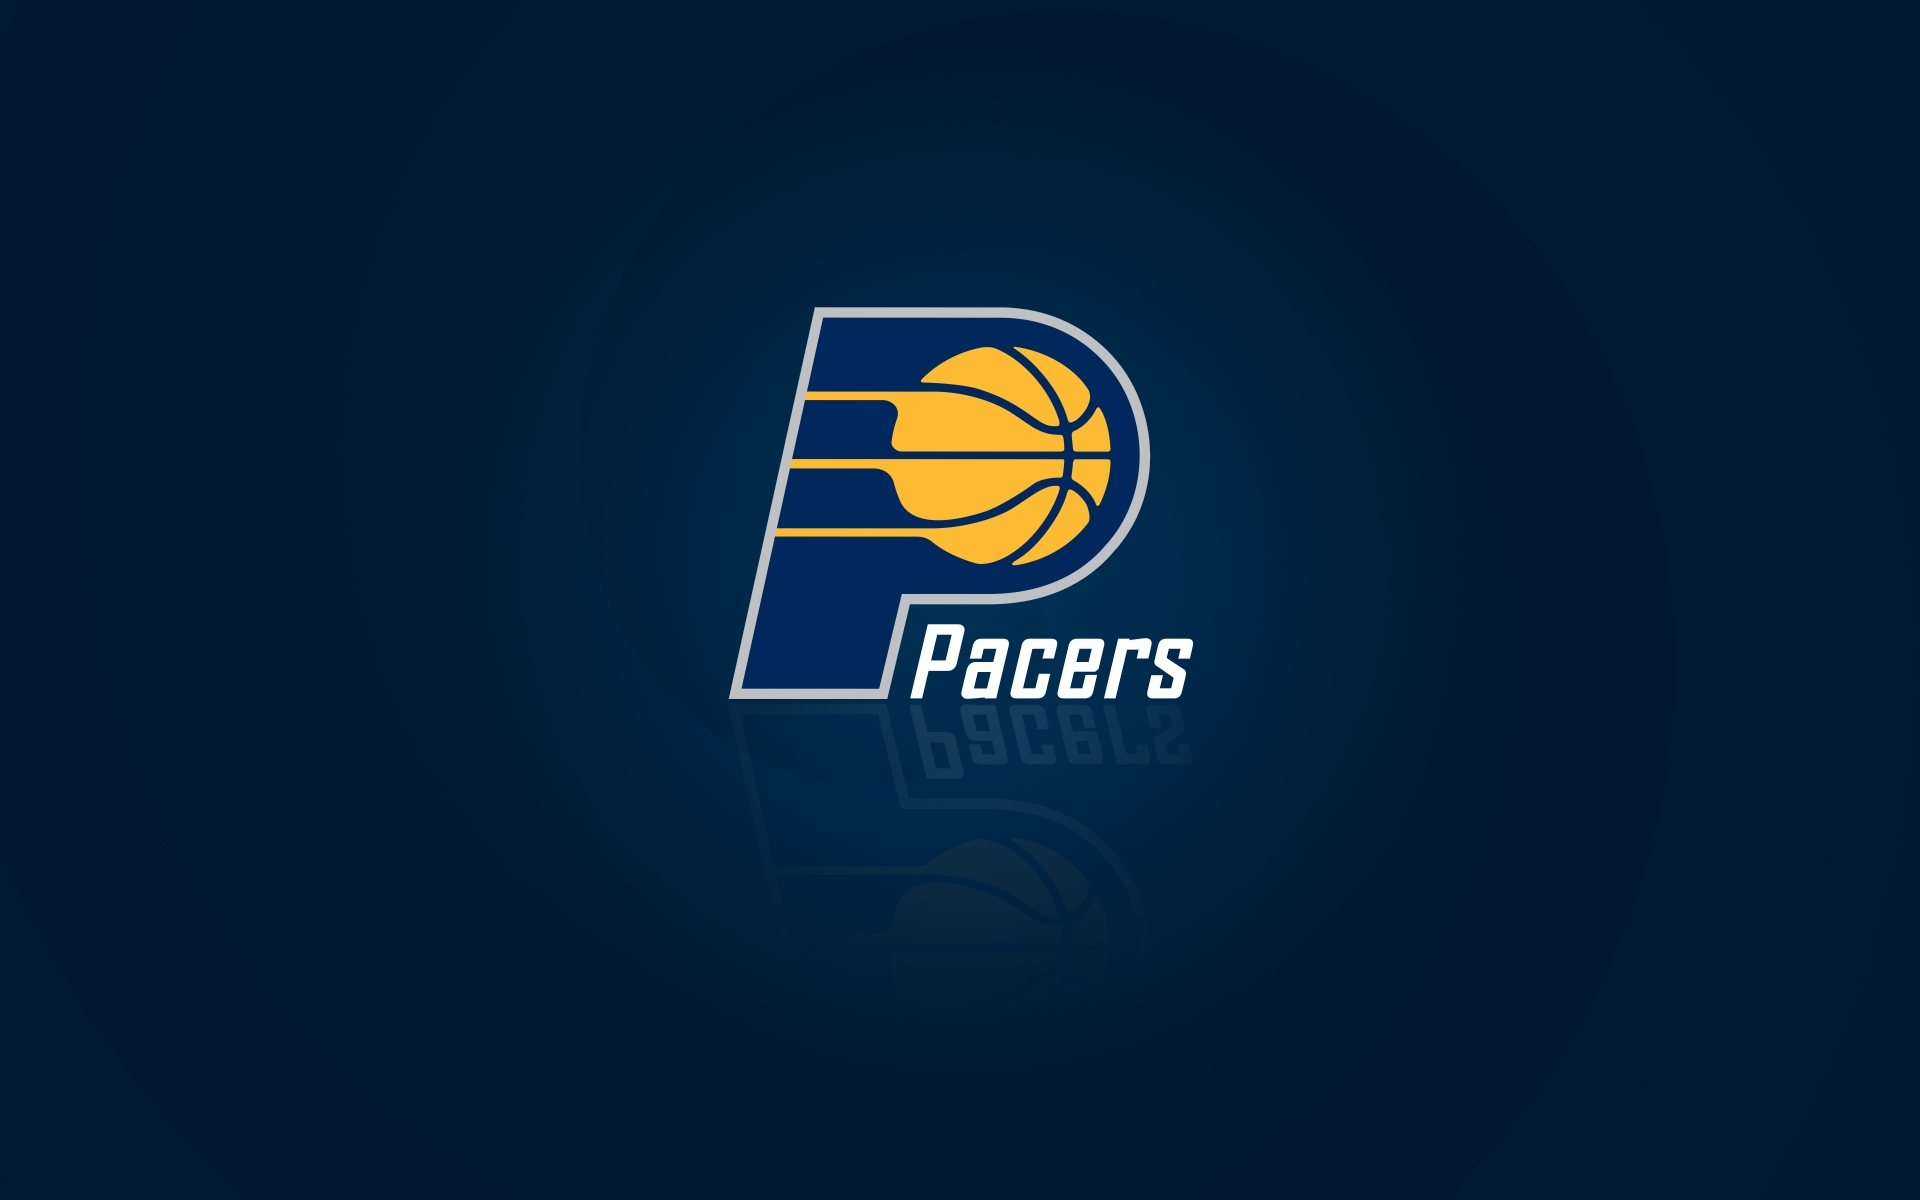 Indiana pacers logos download indiana pacers wallpaper 1920x1200 px wide 16x10 hd voltagebd Gallery